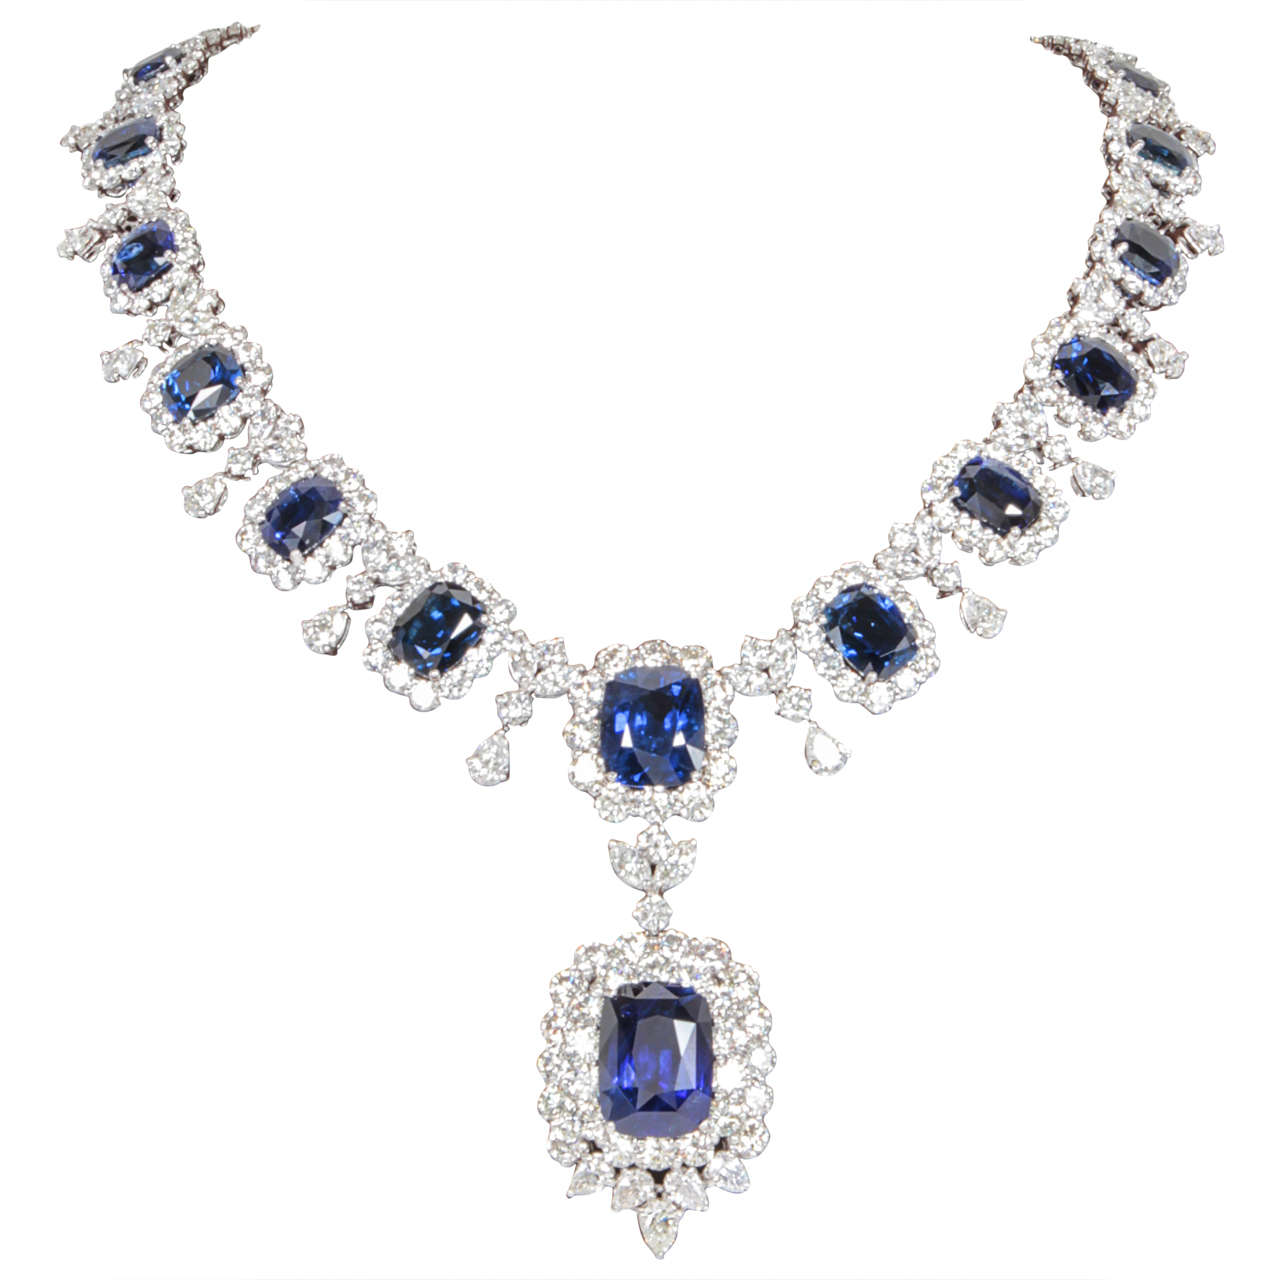 Important Cushion Cut Ceylon Sapphire Diamond Platinum Necklace For Sale